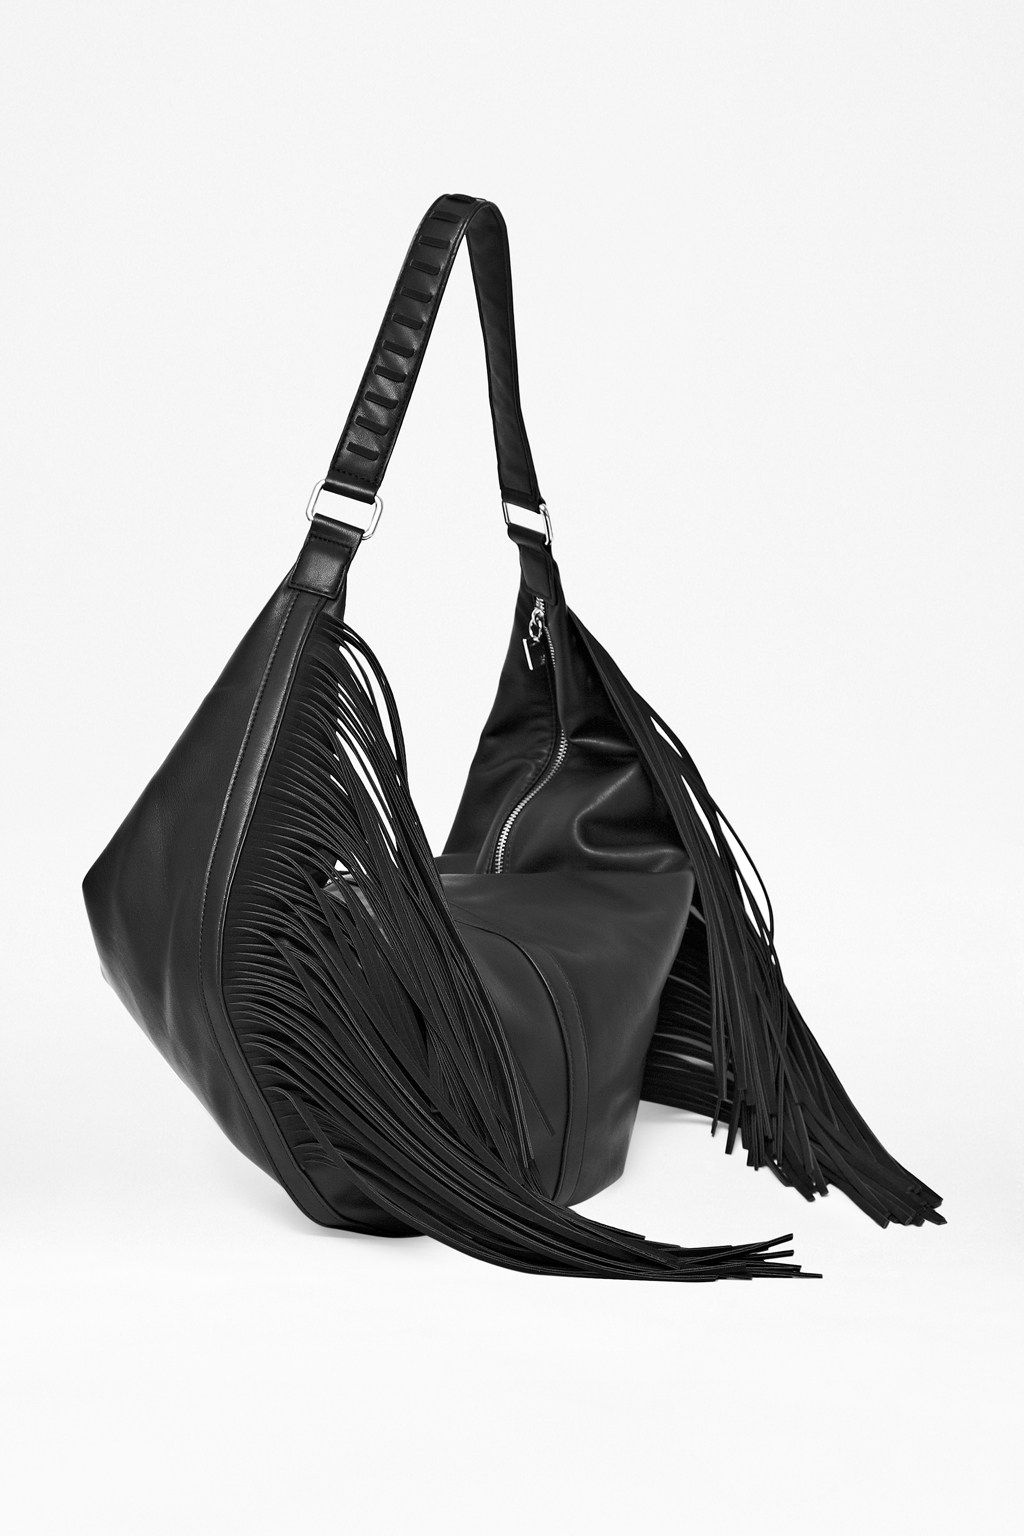 Indie fringe shoulder bag